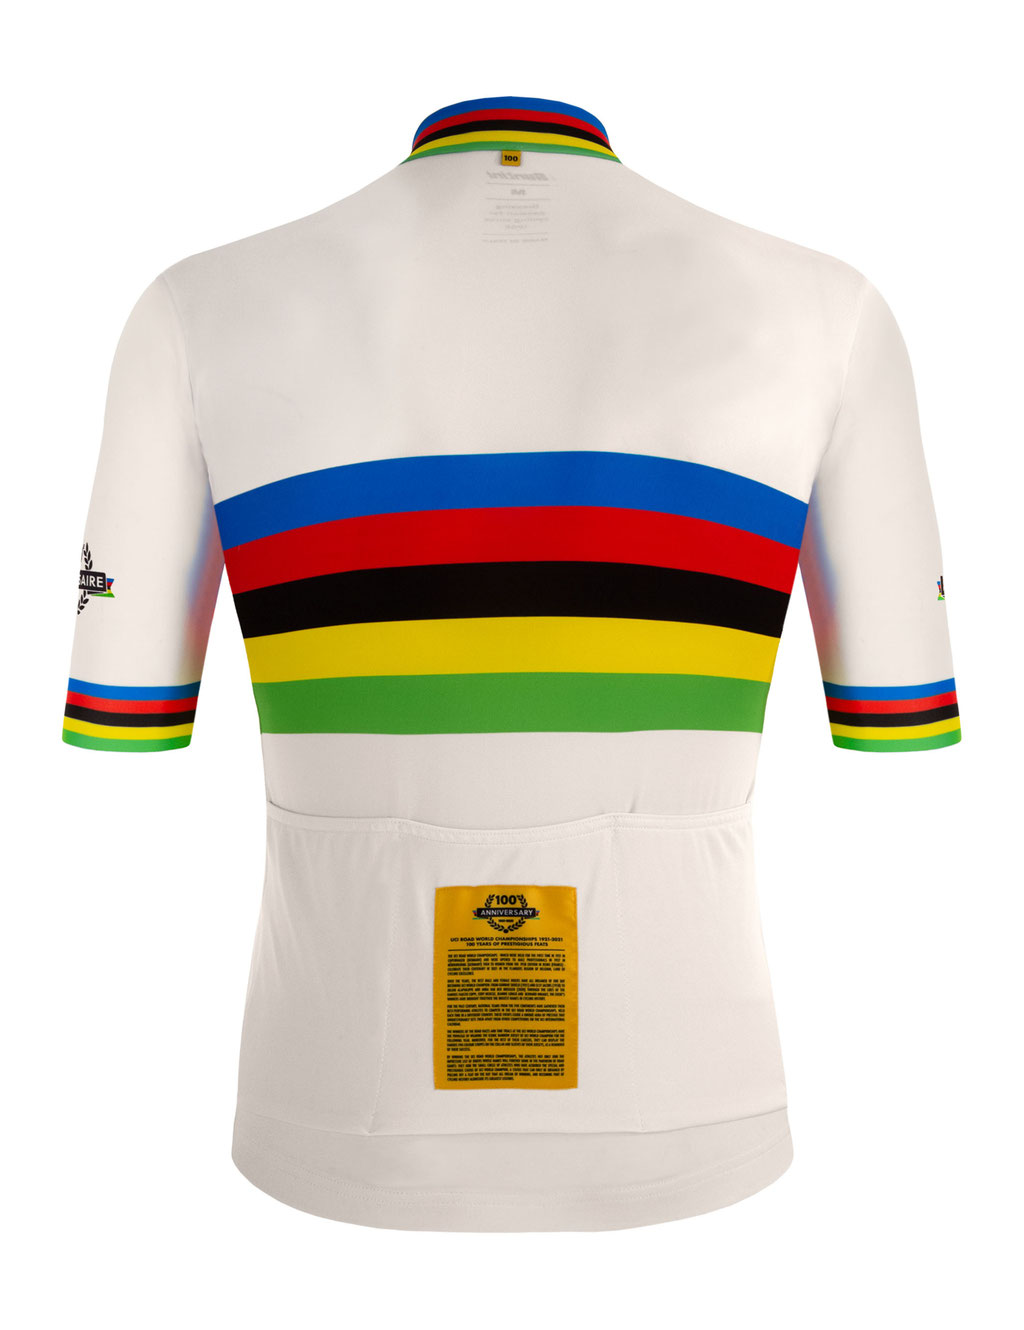 UCI-Weltmeistertrikot in Gold-Version